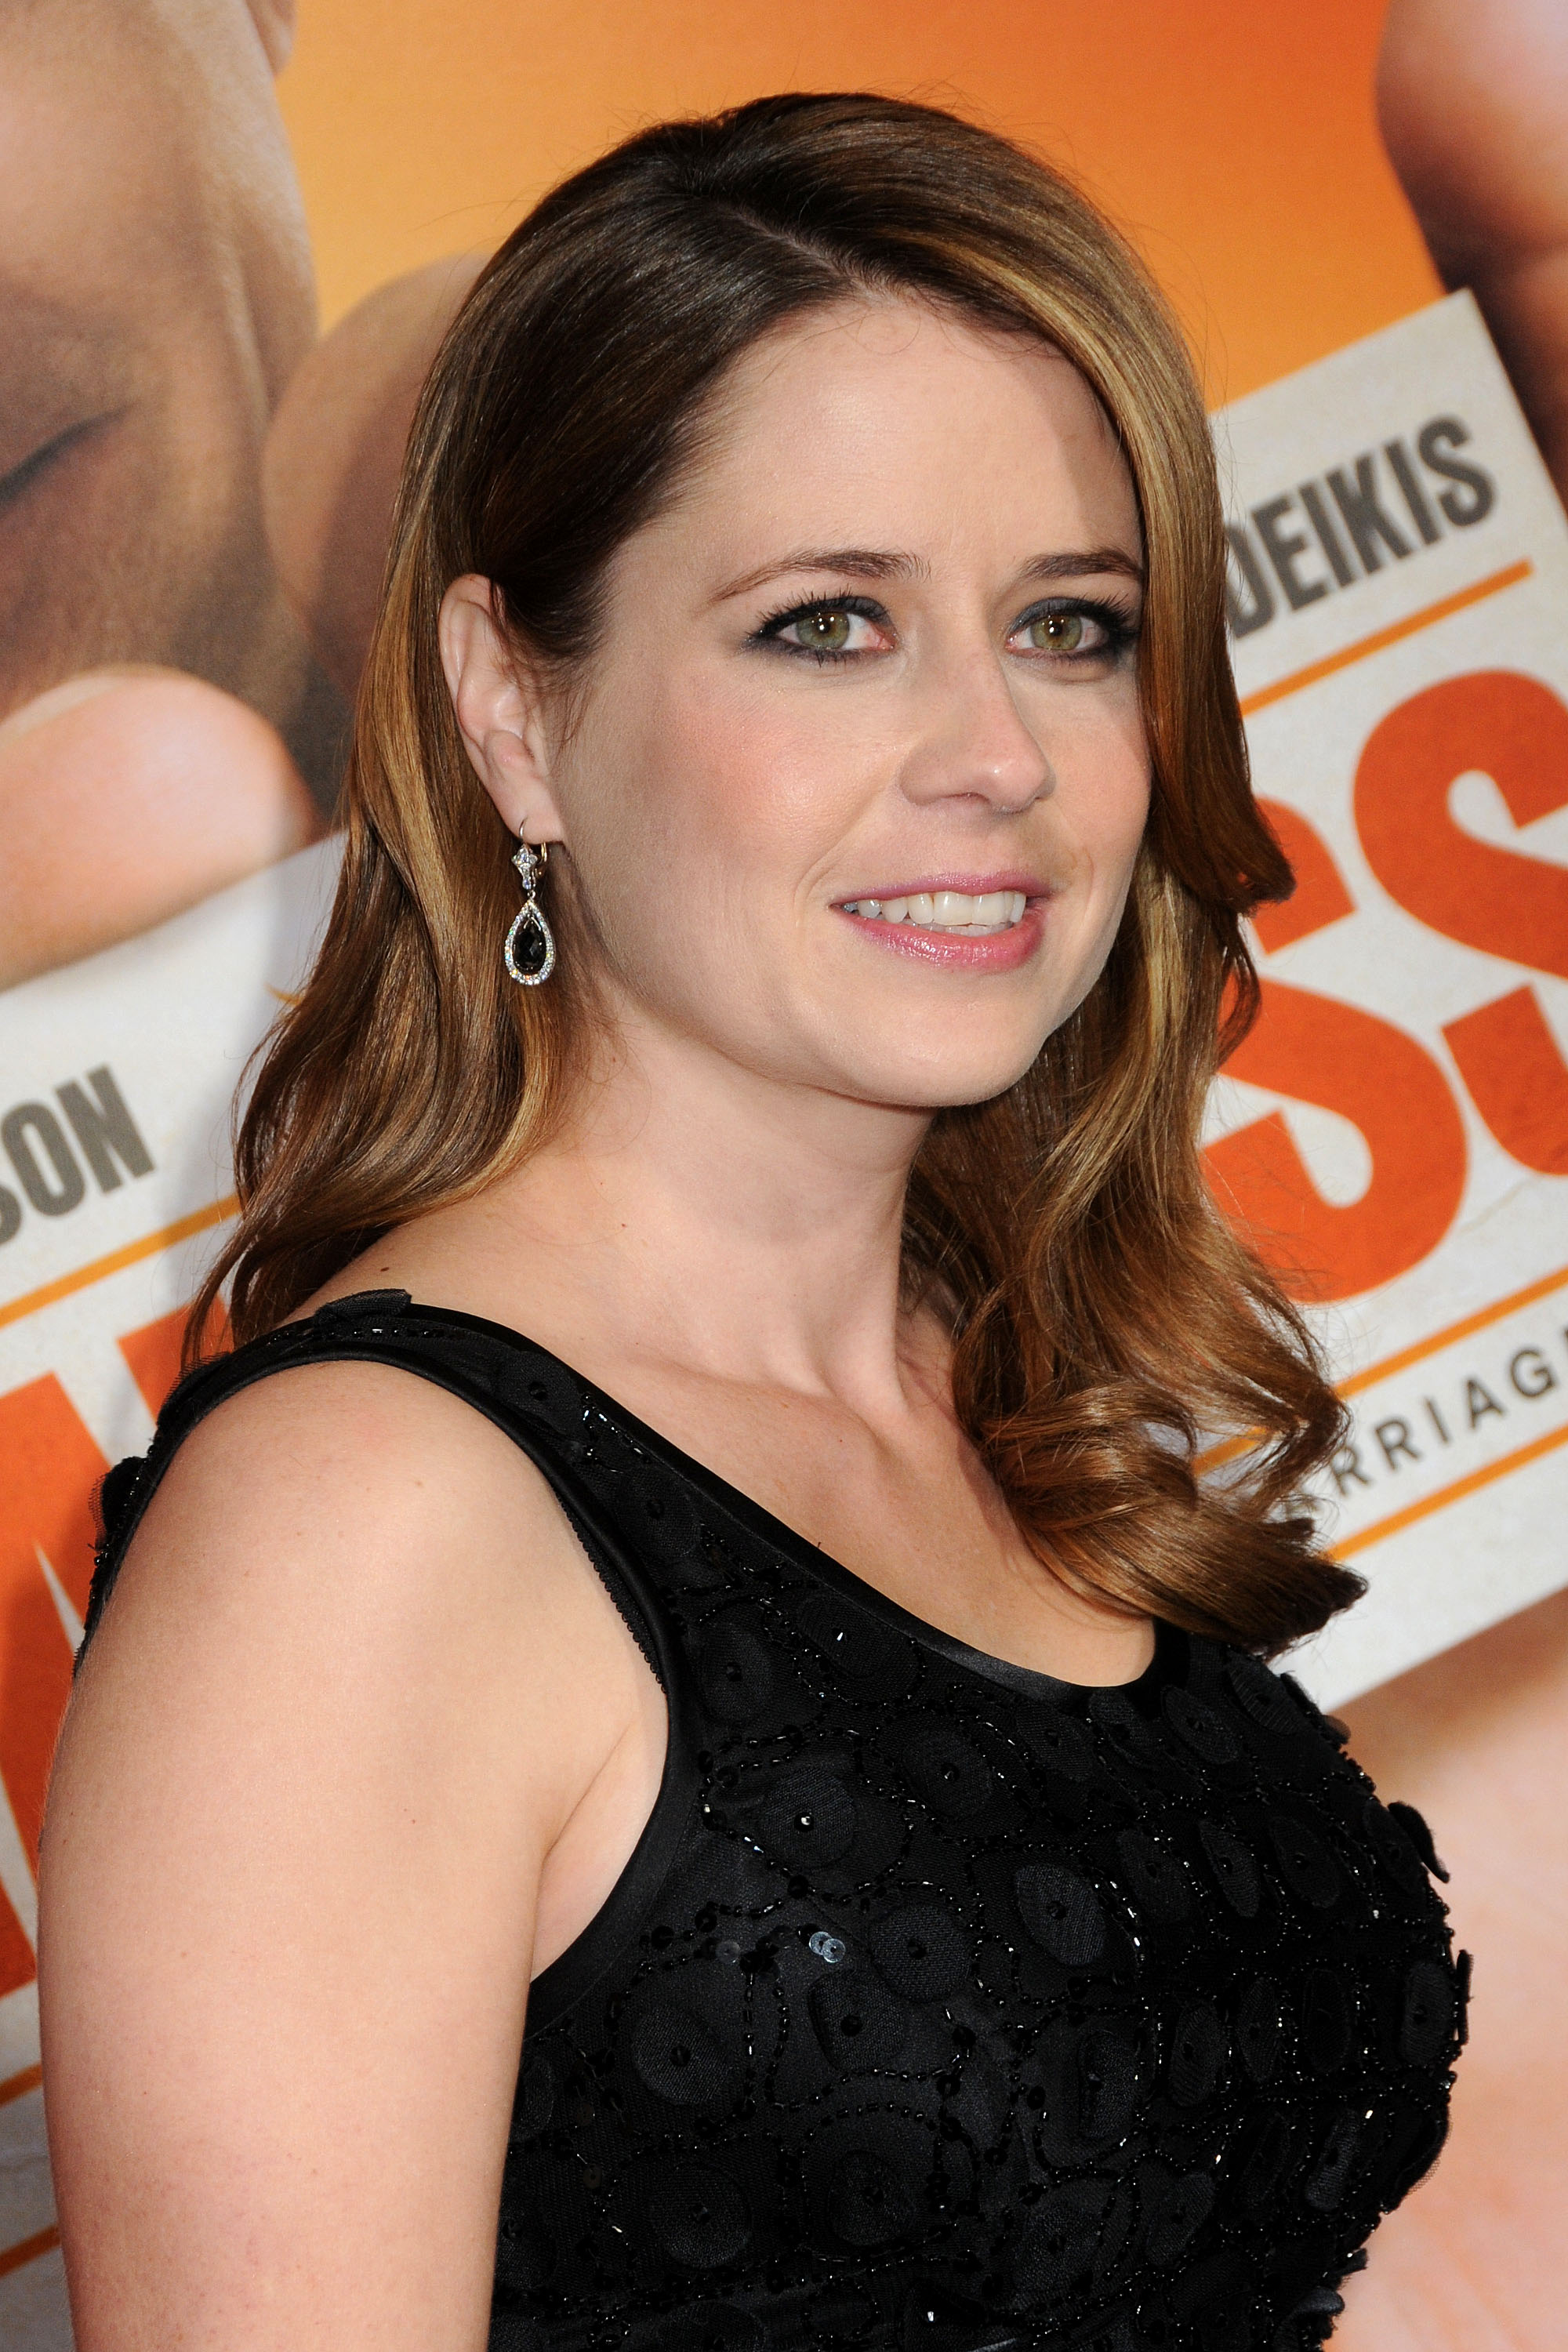 Jenna Fischer 2011 Kosty 555 info 001 Jenna_Fischer_2011_Kosty555  makeup cosmetics pictures bollywood 34f bikini fitness swimsuits